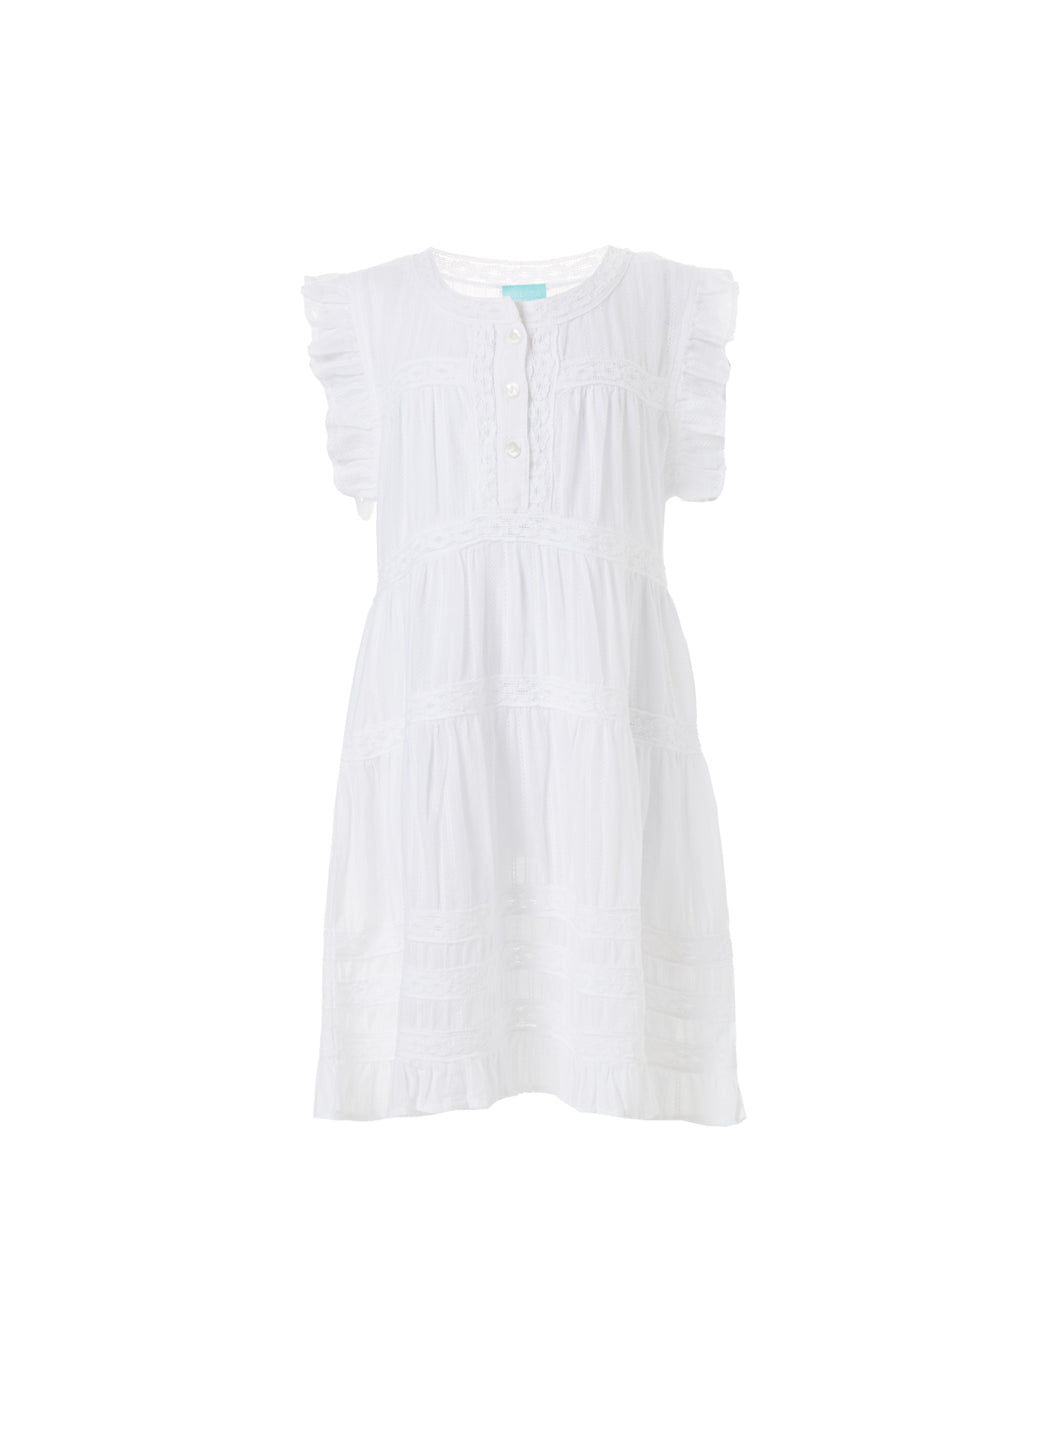 Baby Rebekah White Smock Dress